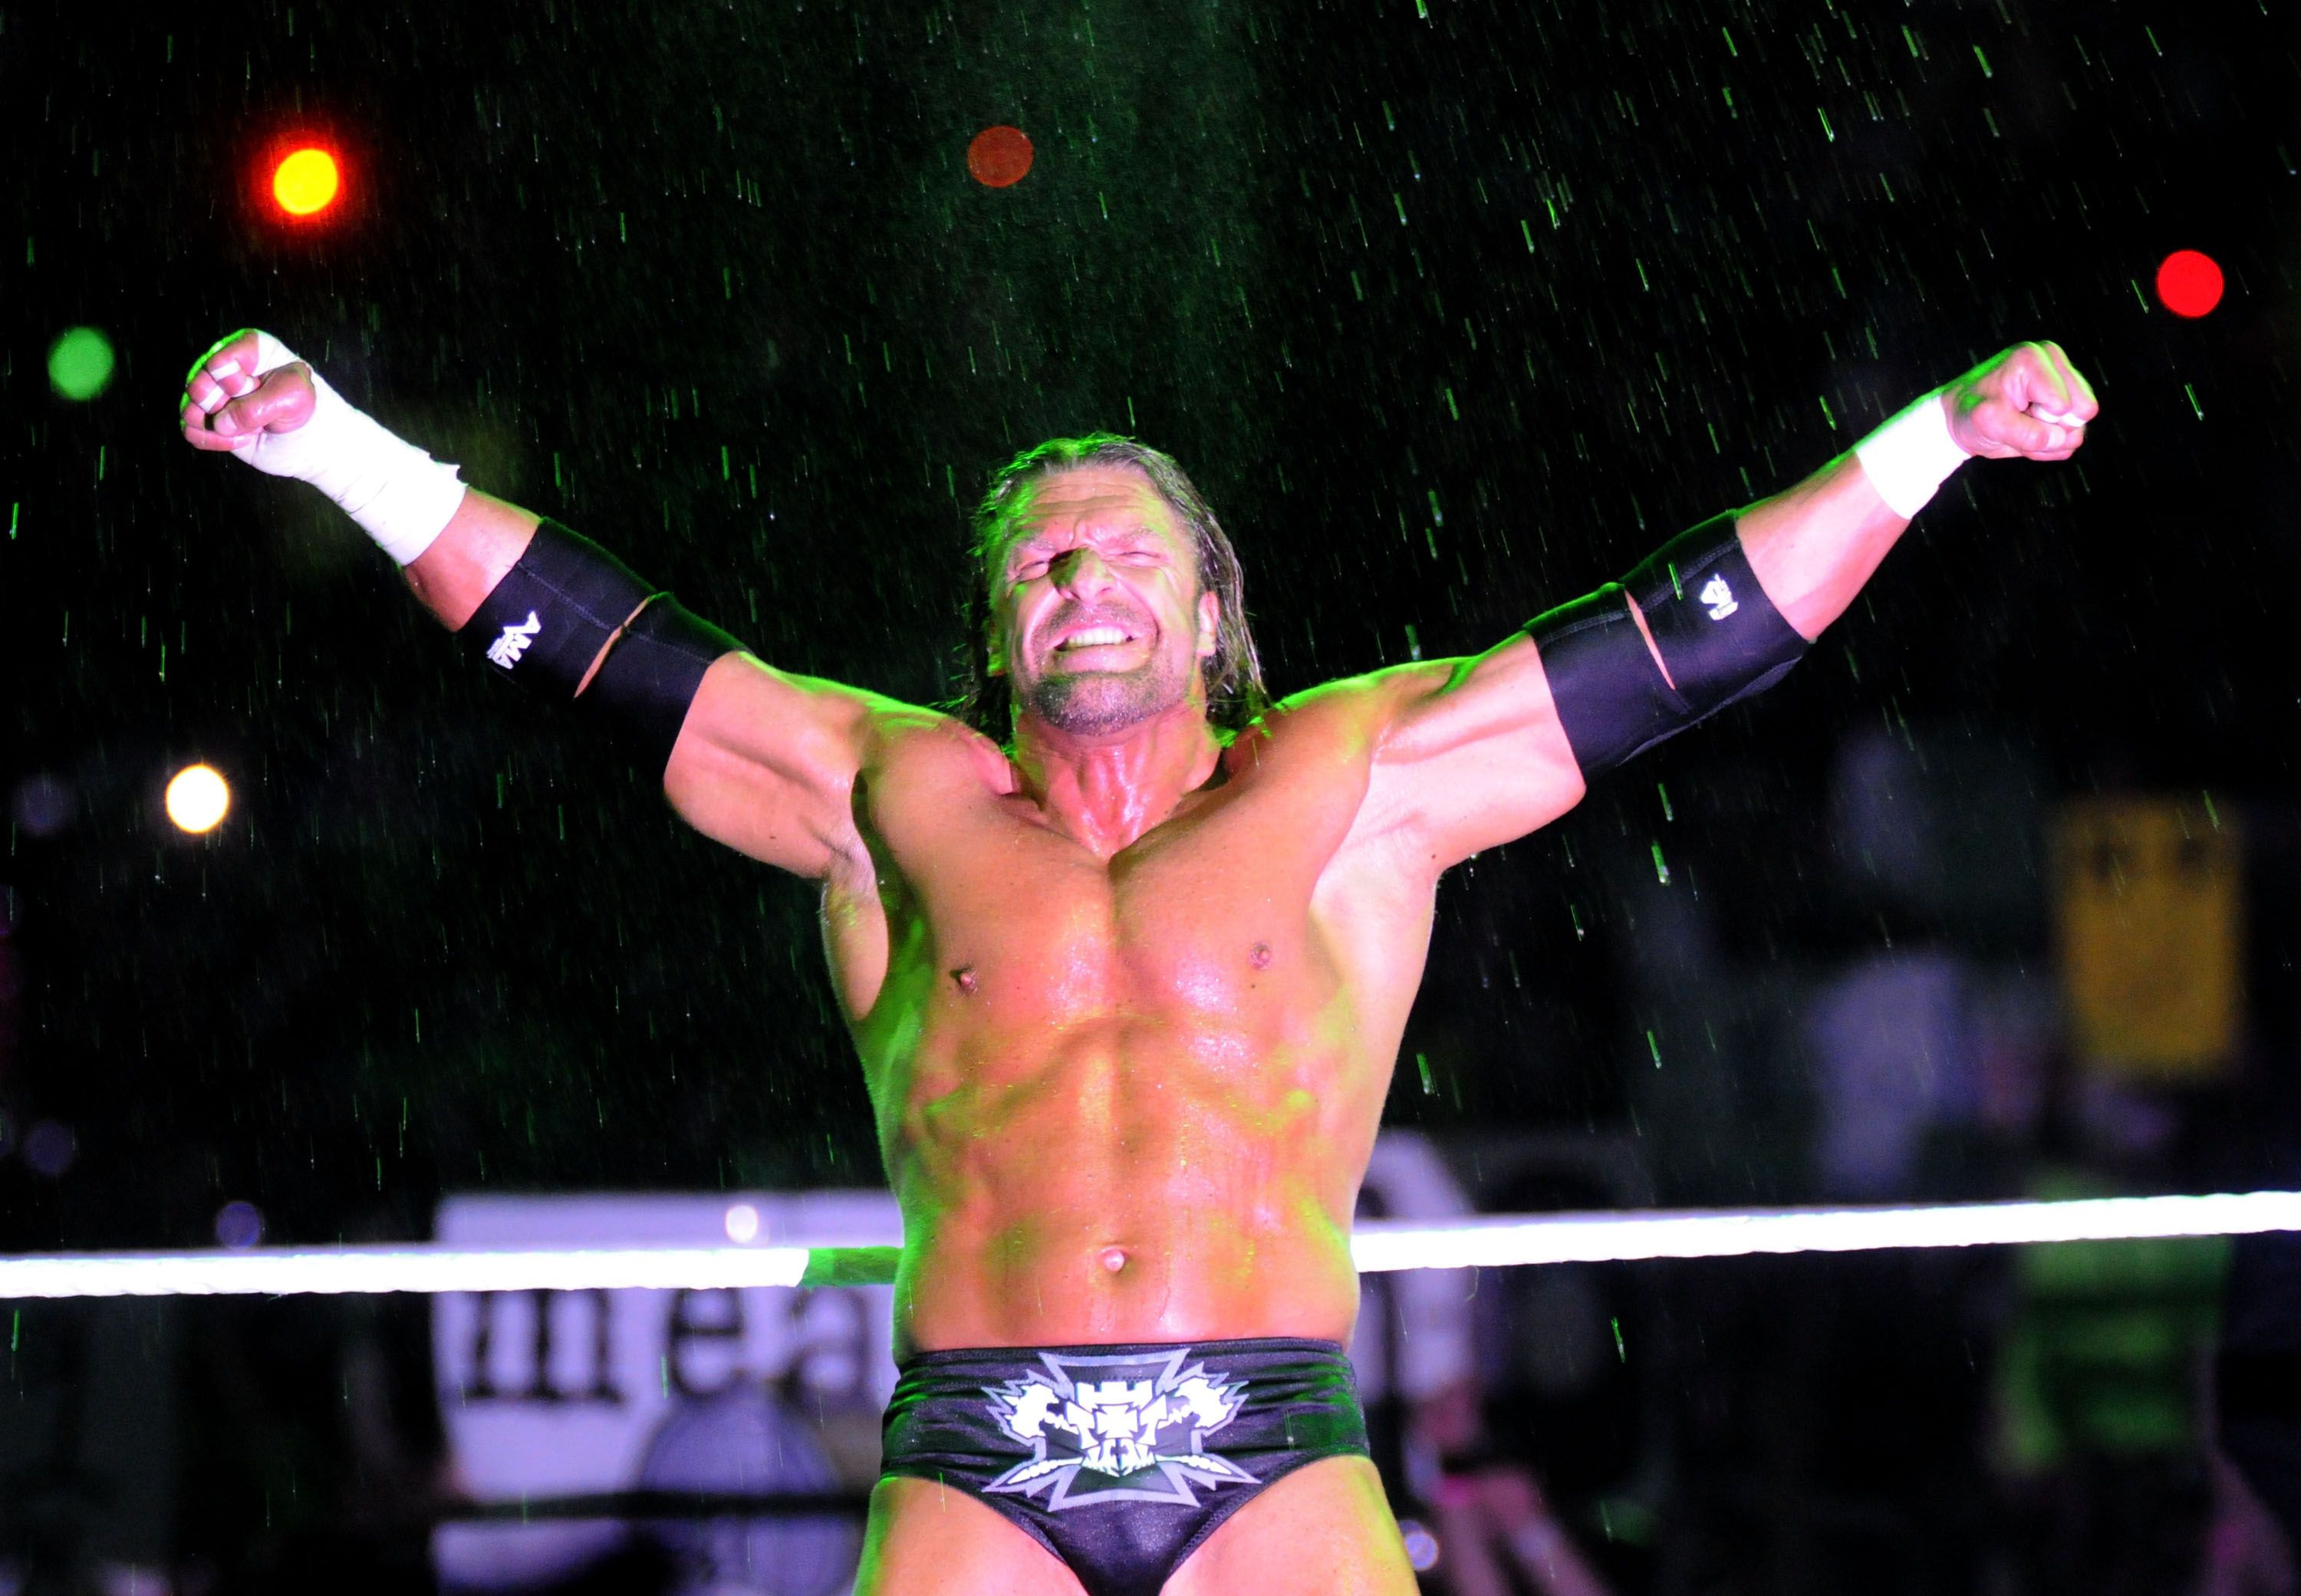 history of world wrestling entertainment World wrestling entertainment (wwe) has 0 splits in our wwe split history database looking at the wwe split history from start to finish, an original position size of 1000 shares would have turned into 1000 today.